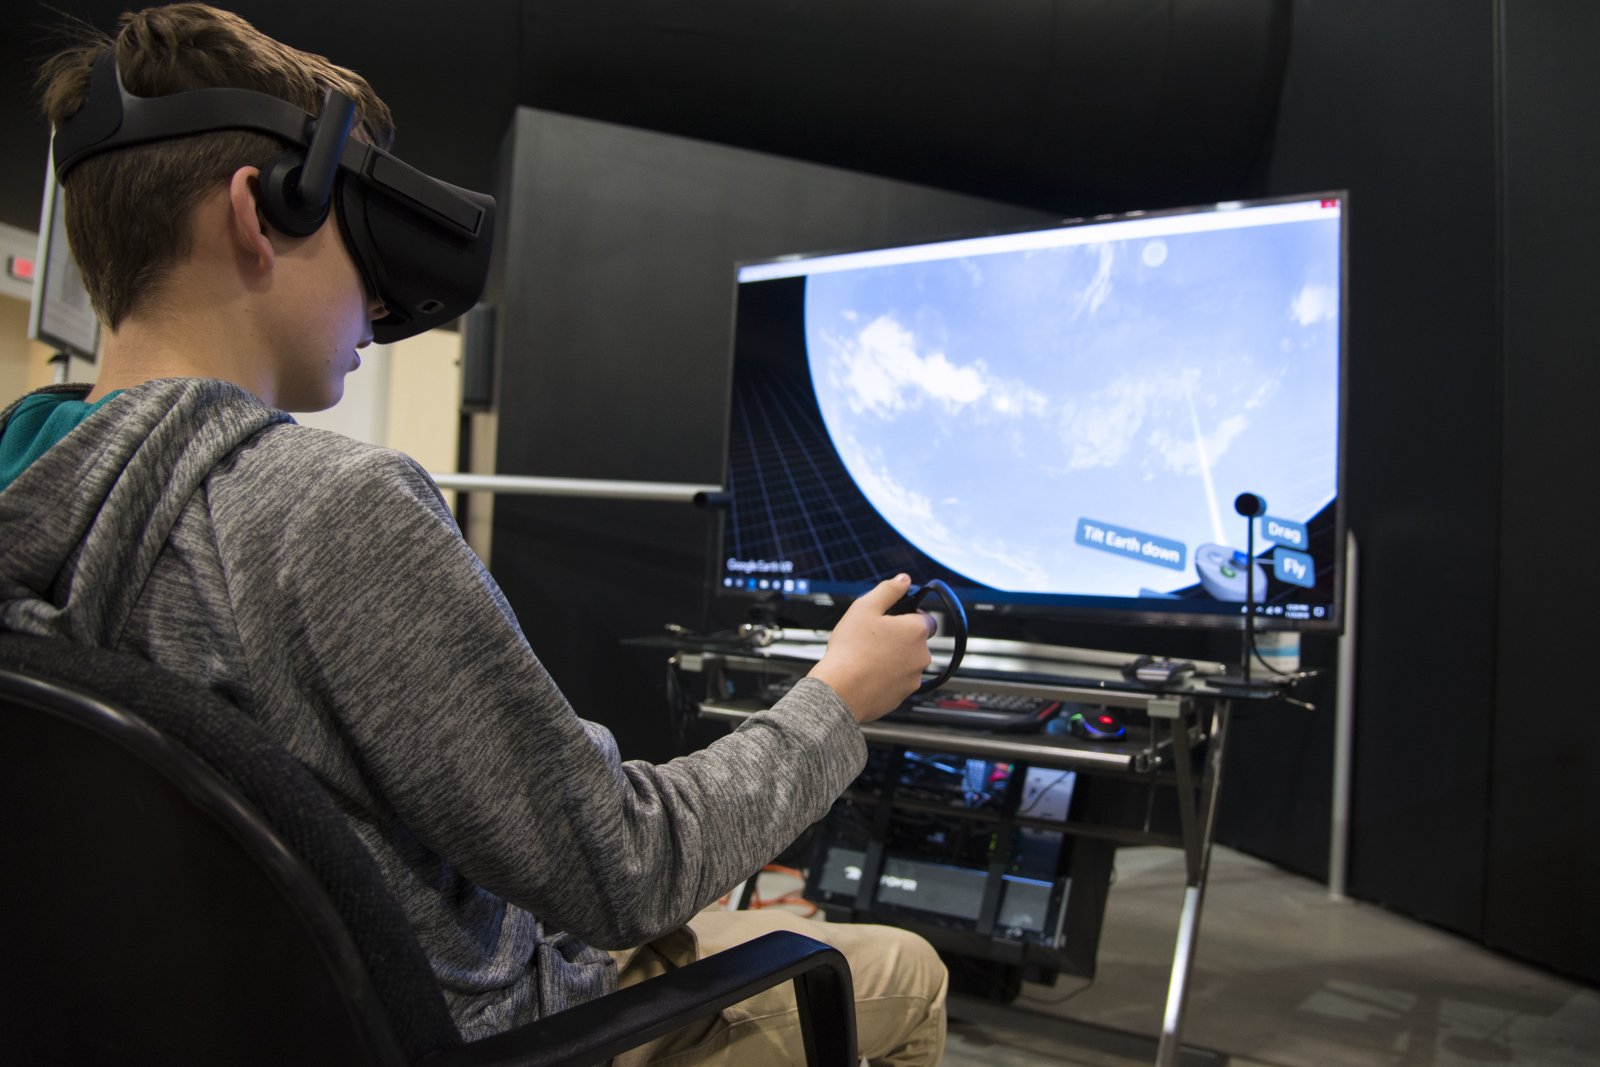 Dreaming in VR Immersive Technology Photo by National Museum of the US Air Force